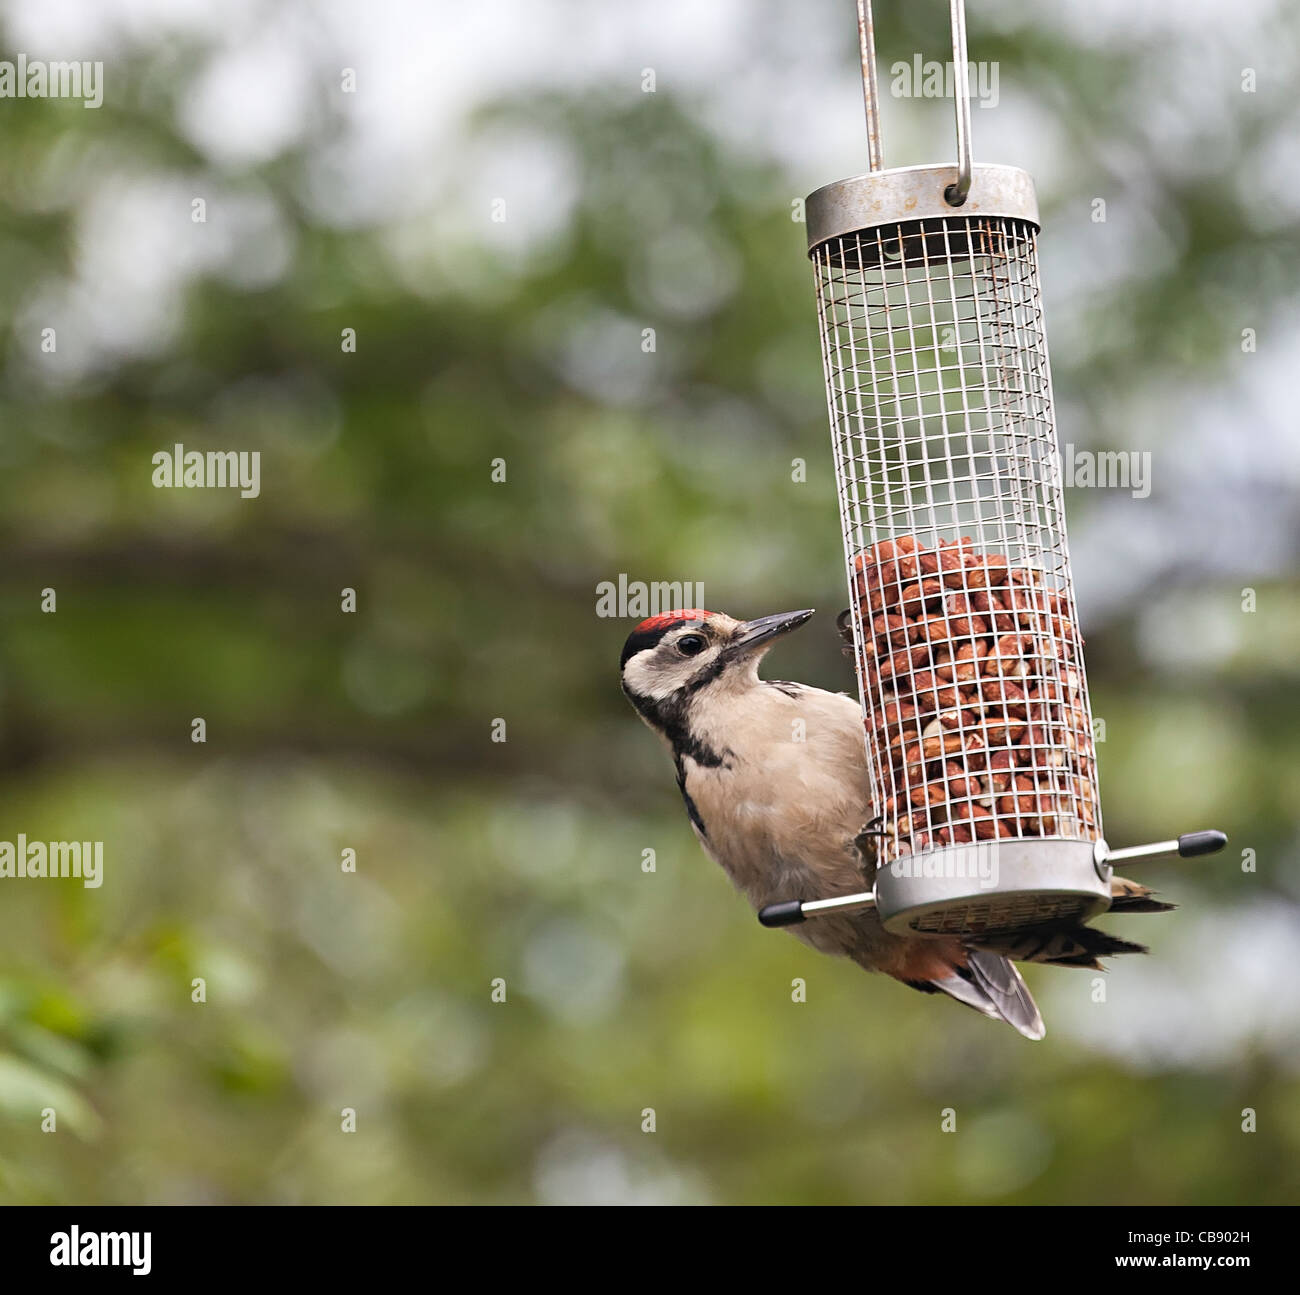 Great Spotted Woodpecker Dendrocopos major eating peanuts on domestic bird feeder Wales UK - Stock Image